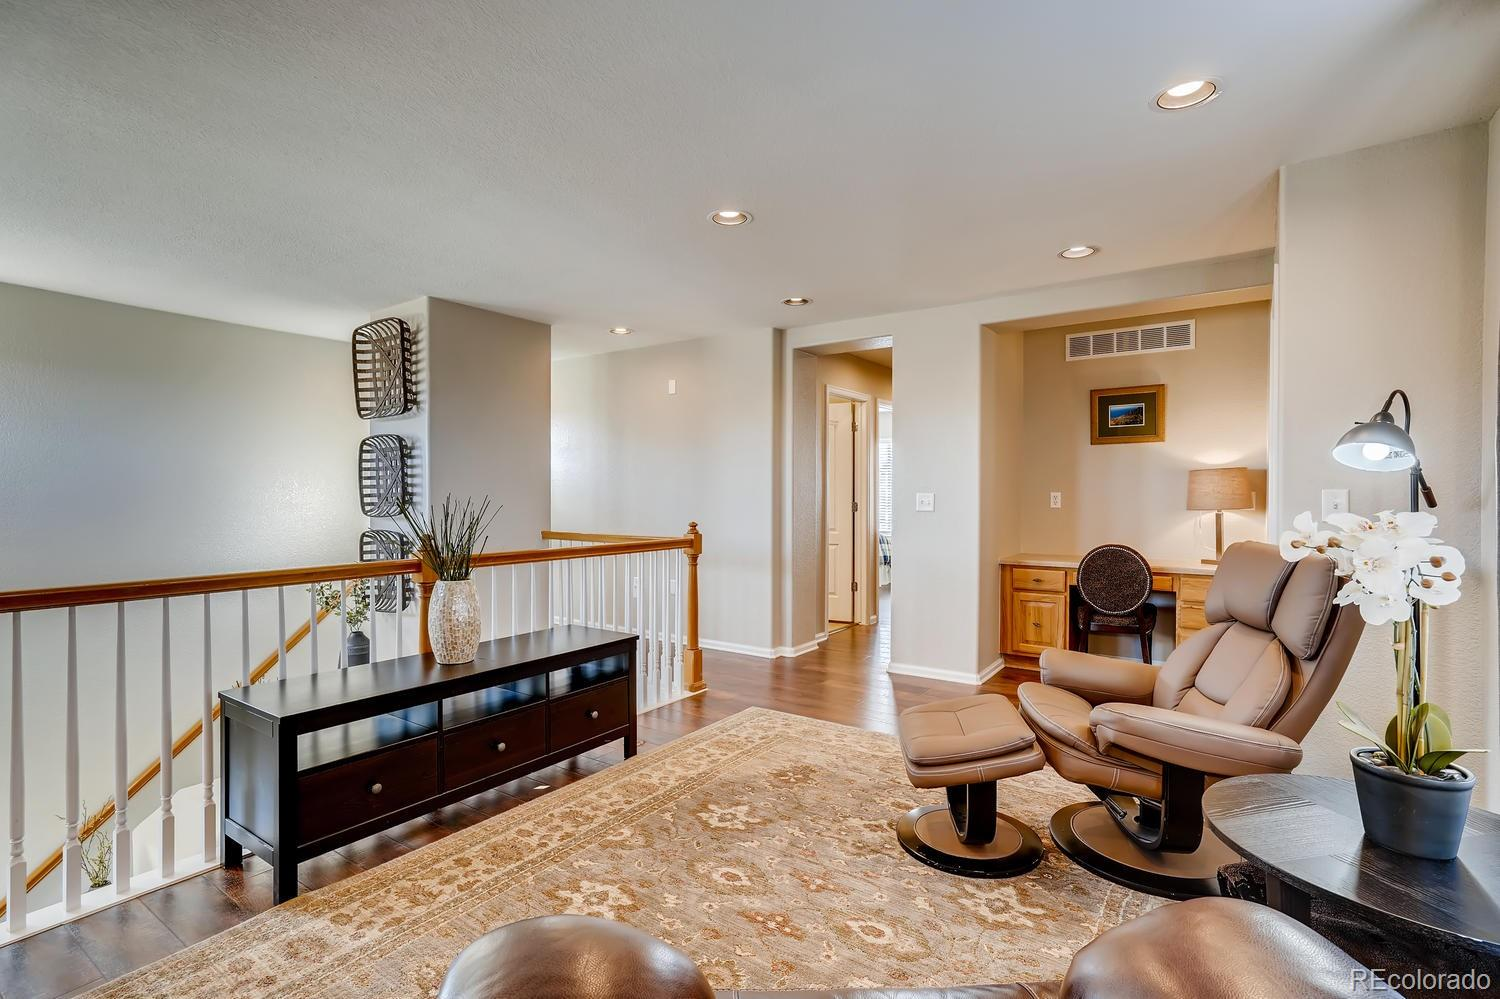 MLS# 8227370 - 12 - 10562 Atwood Circle, Highlands Ranch, CO 80130